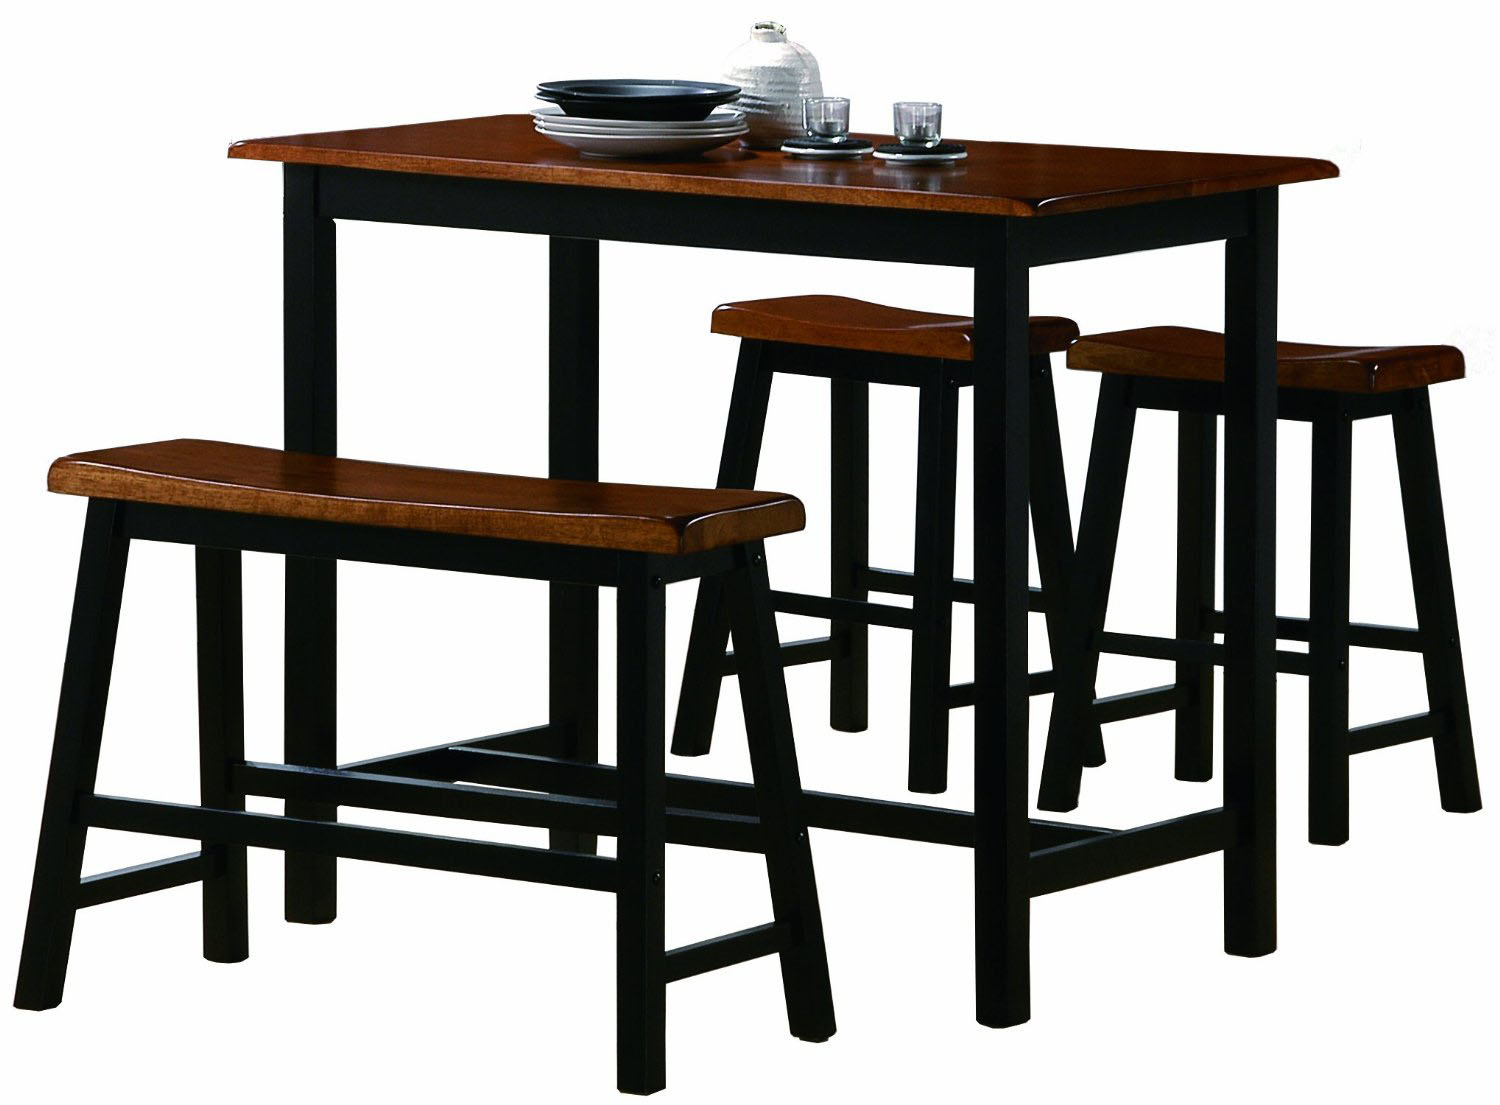 tall kitchen table sets Tall Kitchen Table | Home Decorator Shop tall kitchen table sets